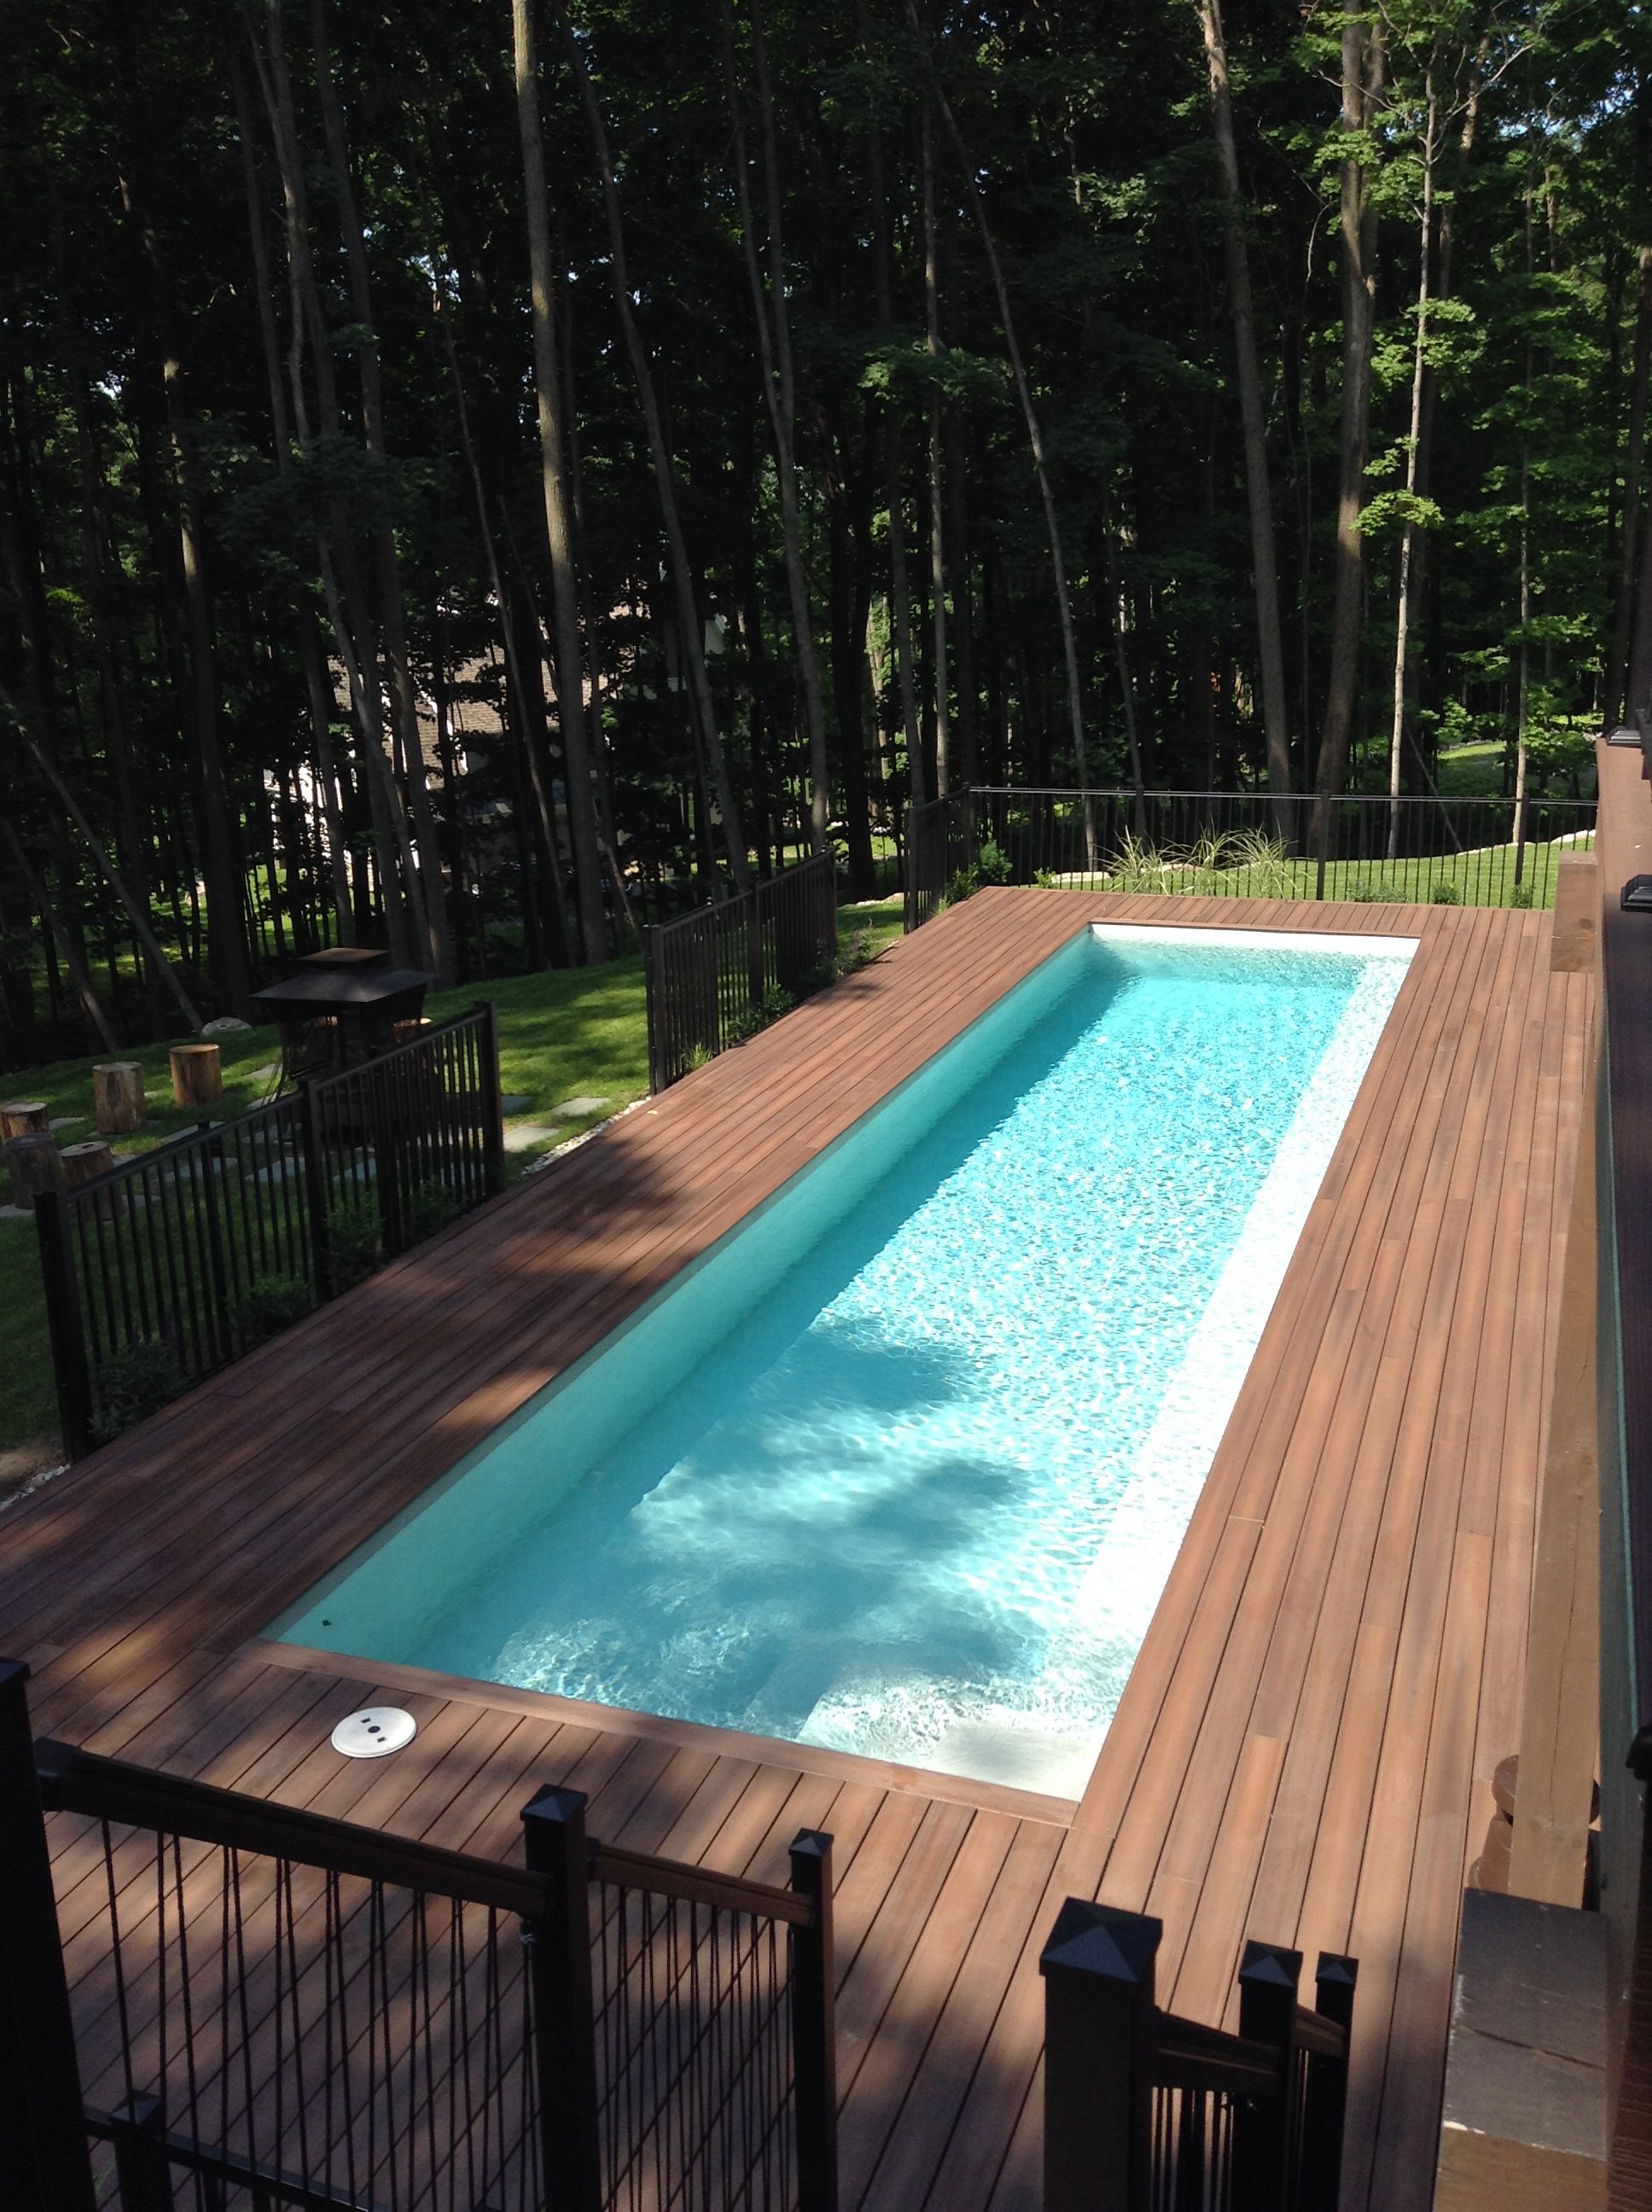 Contemporary Swimming Pool With Fiberon Composite Decking Fiberon Is A Great Building Material To Use Around Backyard Pool Designs Pool Designs Backyard Pool